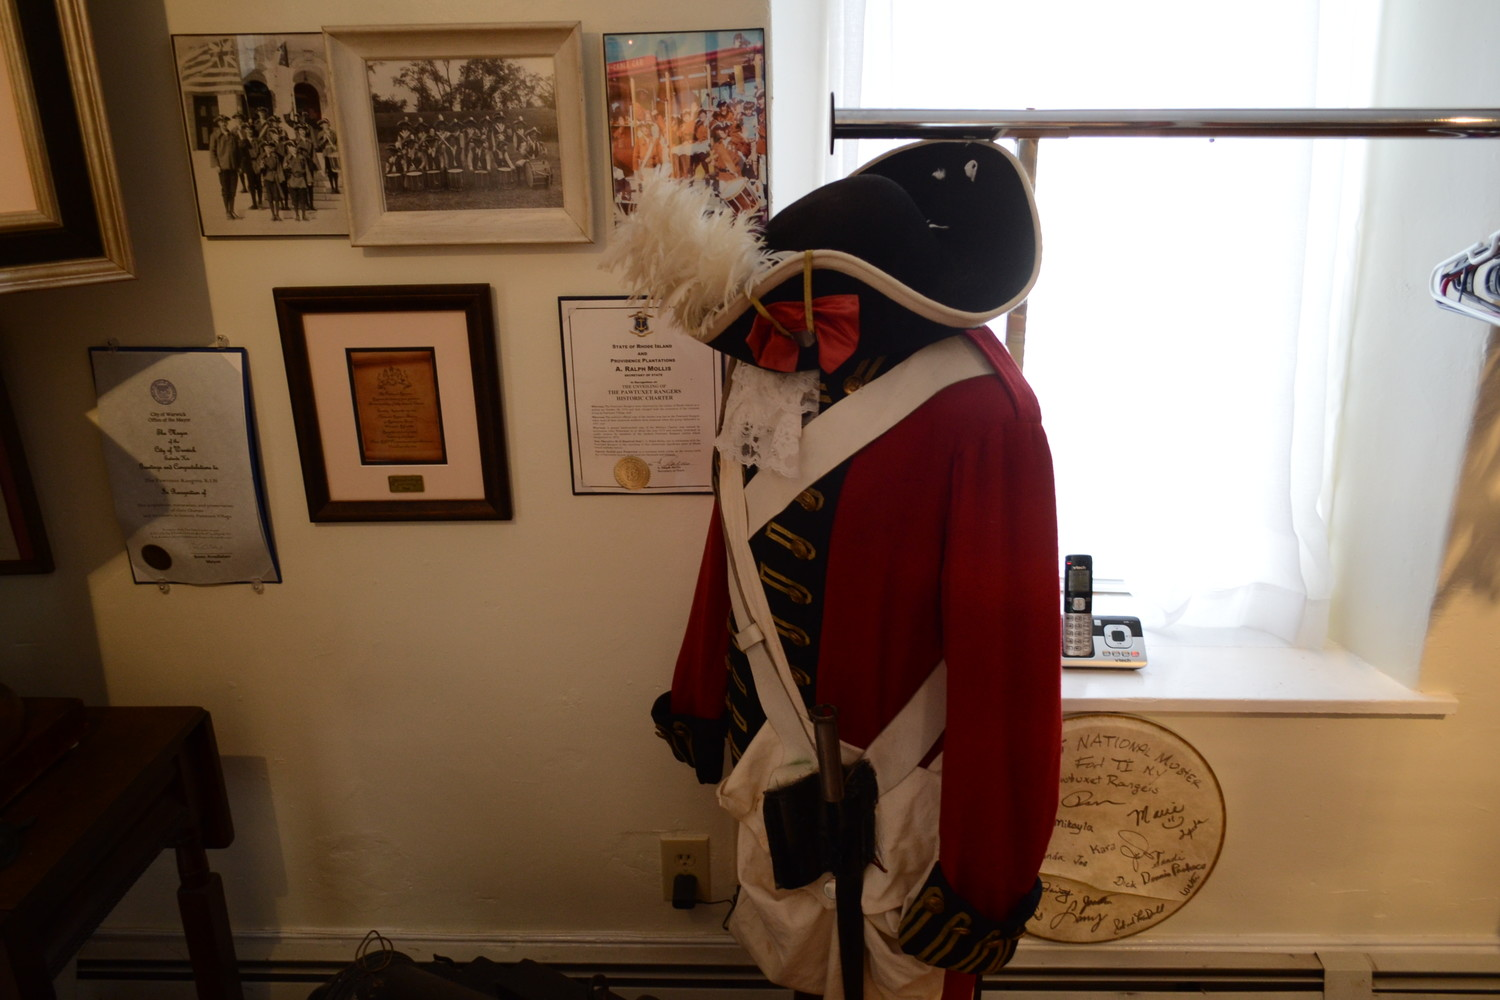 ALL DRESSED UP: A modern Pawtuxet Ranger uniform on display at the company's new museum exhibit at the Pawtuxet Armory Hall.